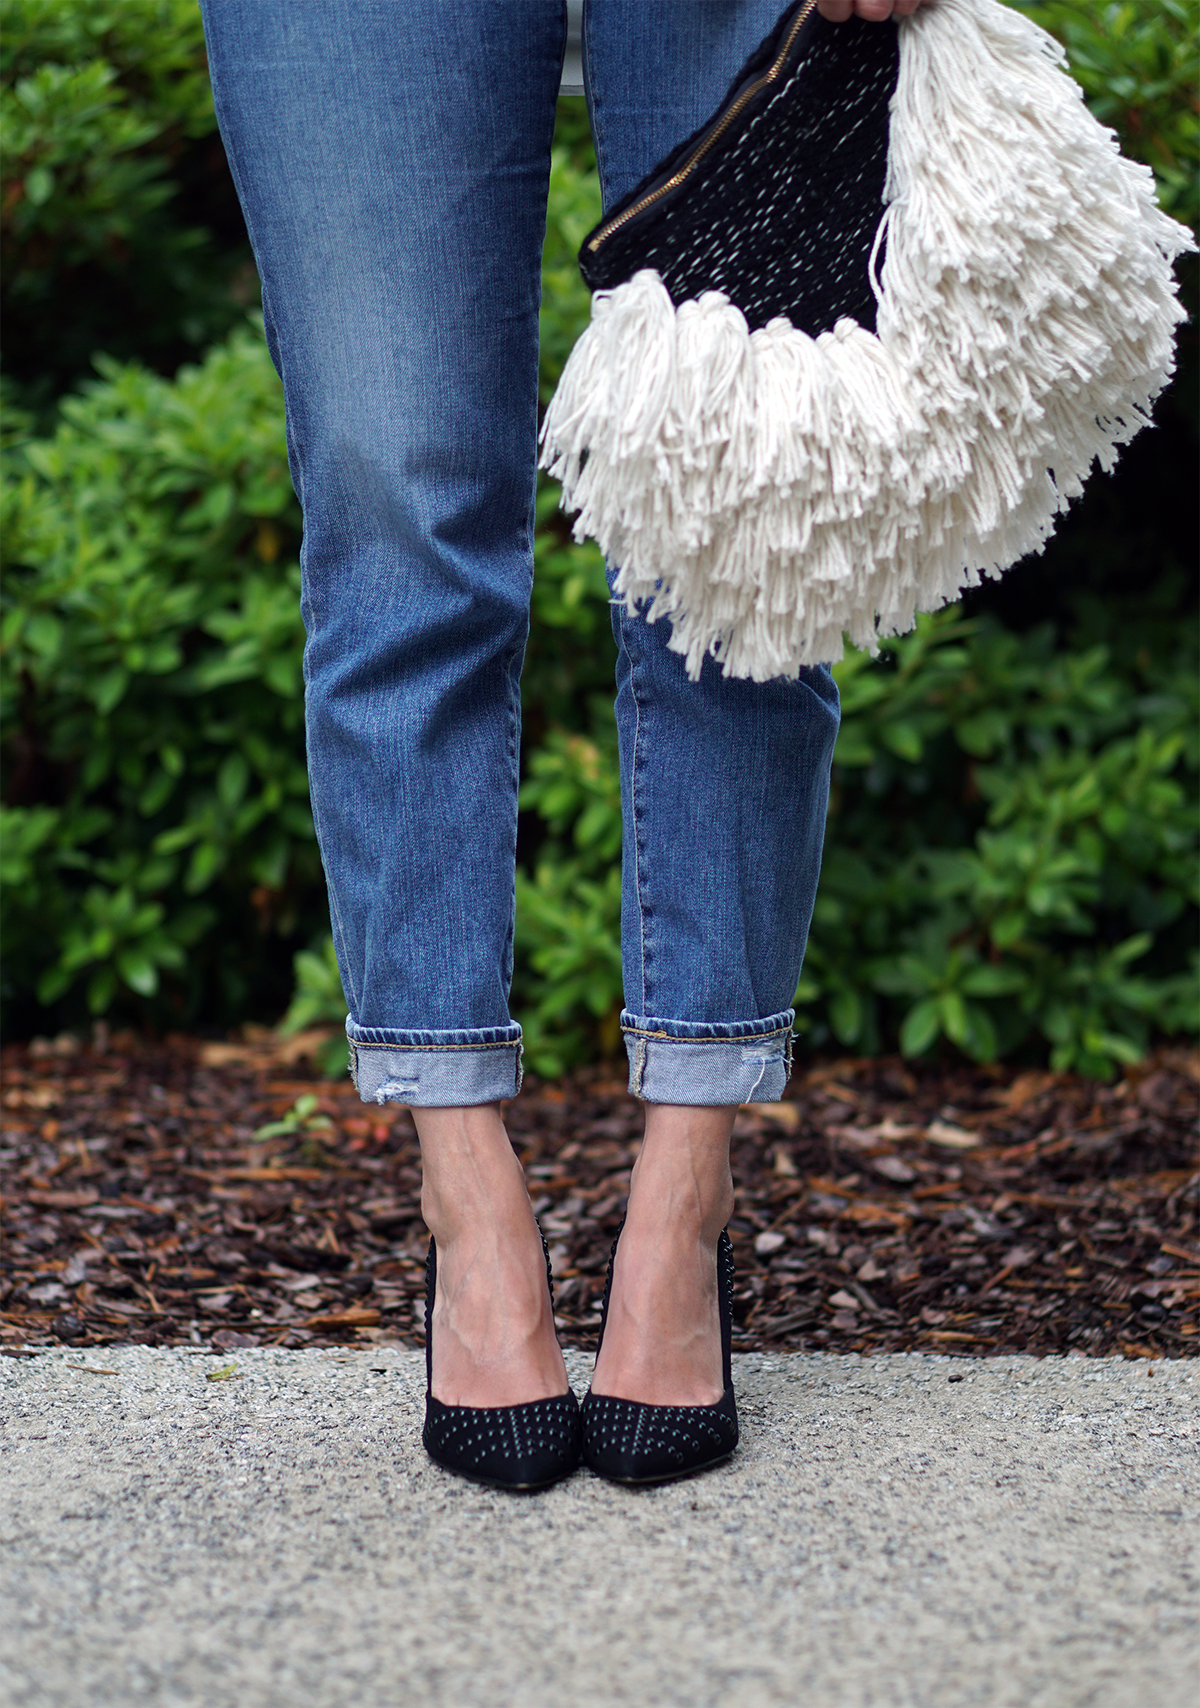 Mom jeans, mum jeans, boyfriend jeans, layering, over 30, casual, dress over trousers, dress over pants, frills, ruffles, wrap skirt, stripe, nautical, dress, how to wear, what to wear, ways to wear, 3 ways to wear, body shape, pear shape, personal stylist, how to, fashion, style, casual, every day, summer, balayage, wavy hair, beach waves, high rise, high waist, print, floral, tropical